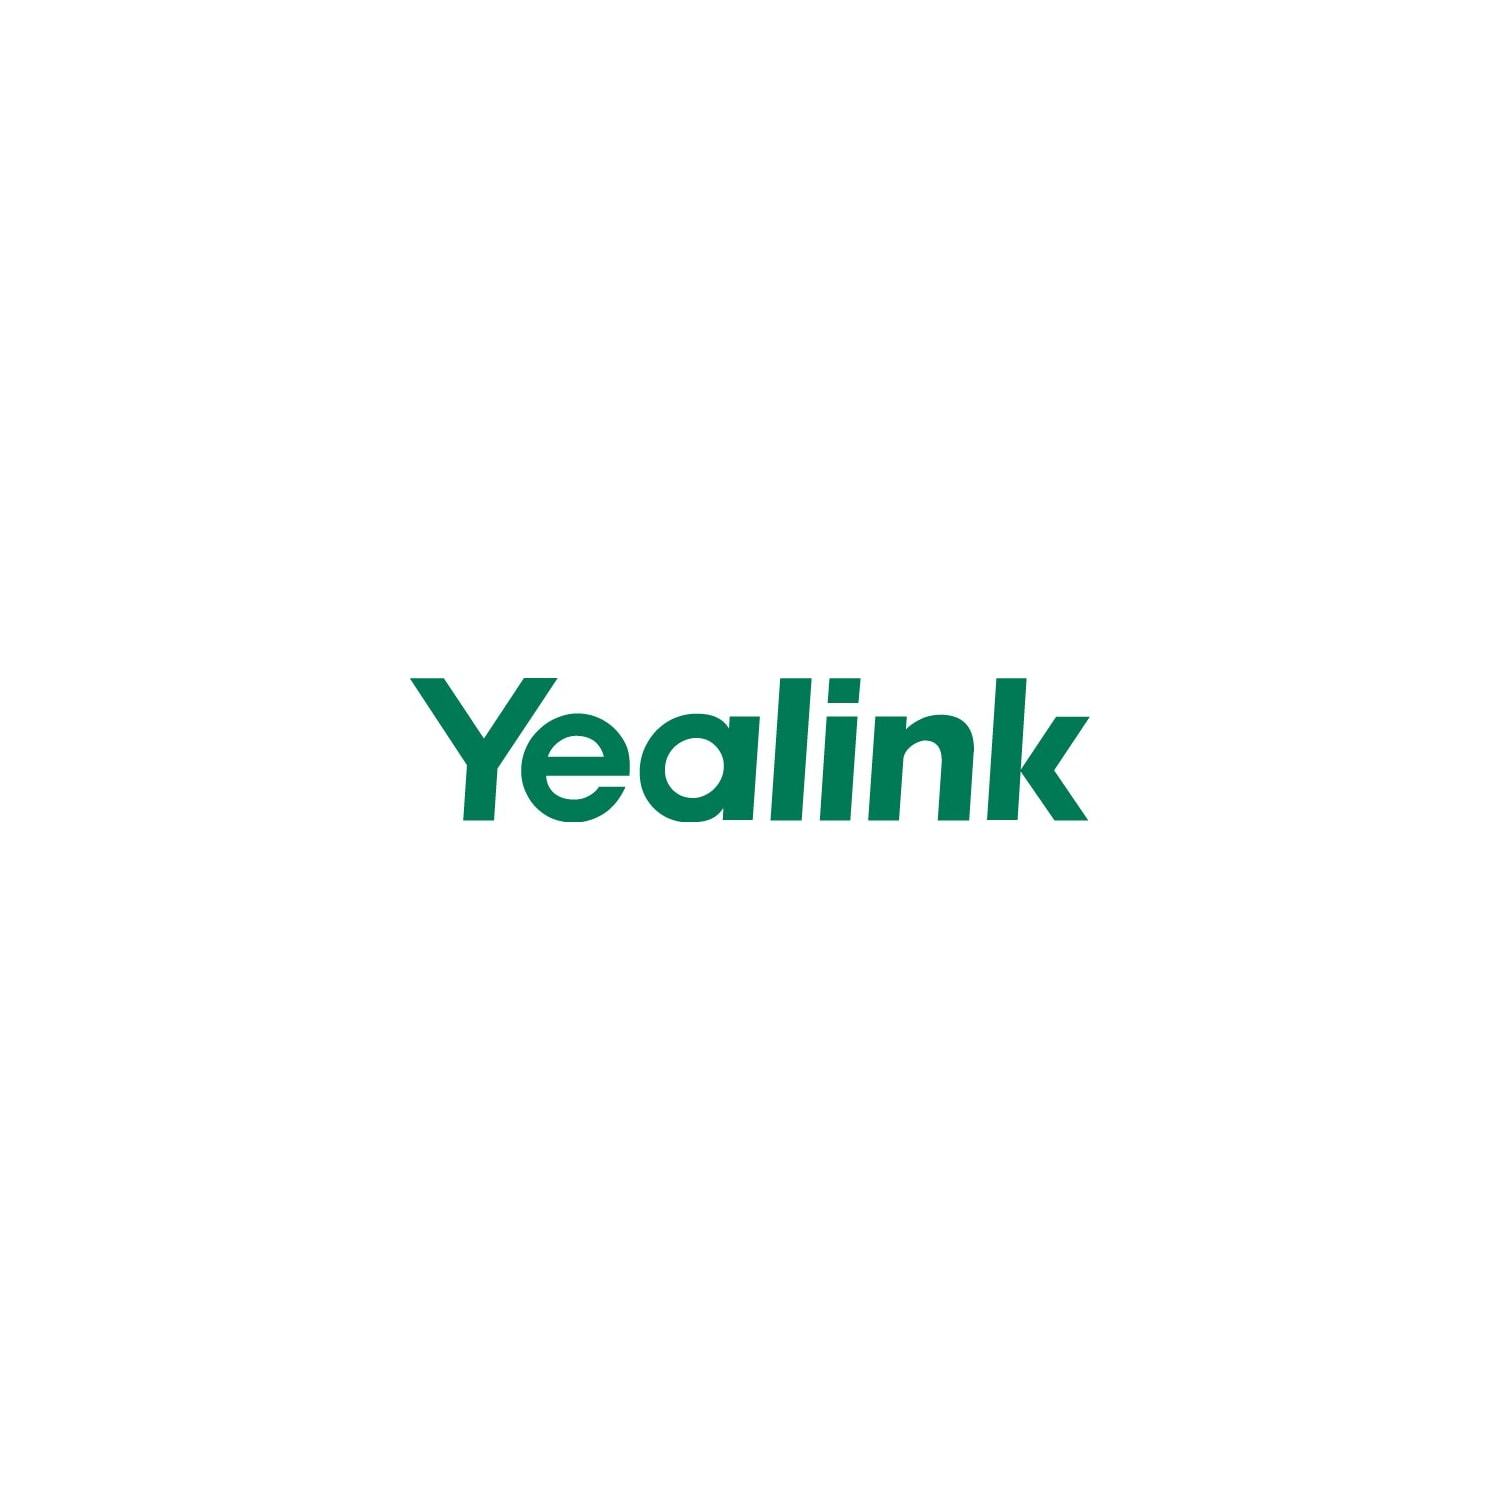 Buy Yealink T56a 16 Line Ip HD Android Phone, 7' 1024 X 600